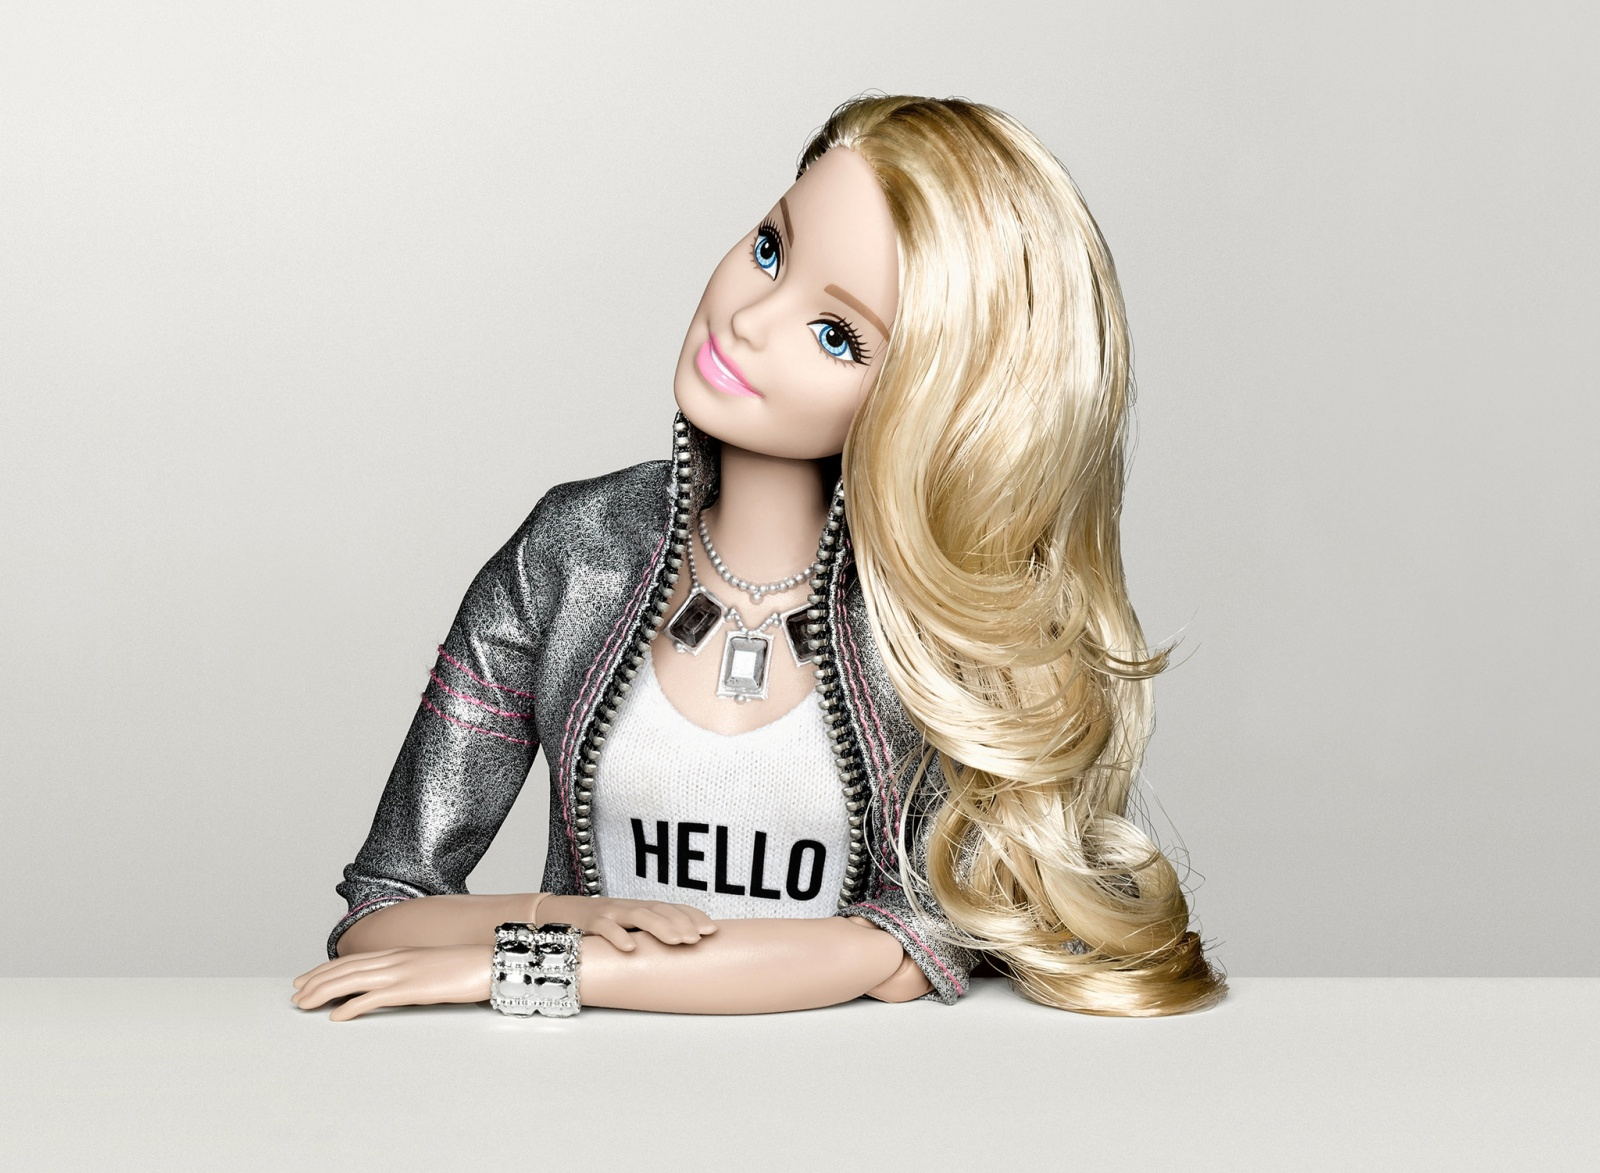 Barbie in psychology of young girls, sensual jailbait